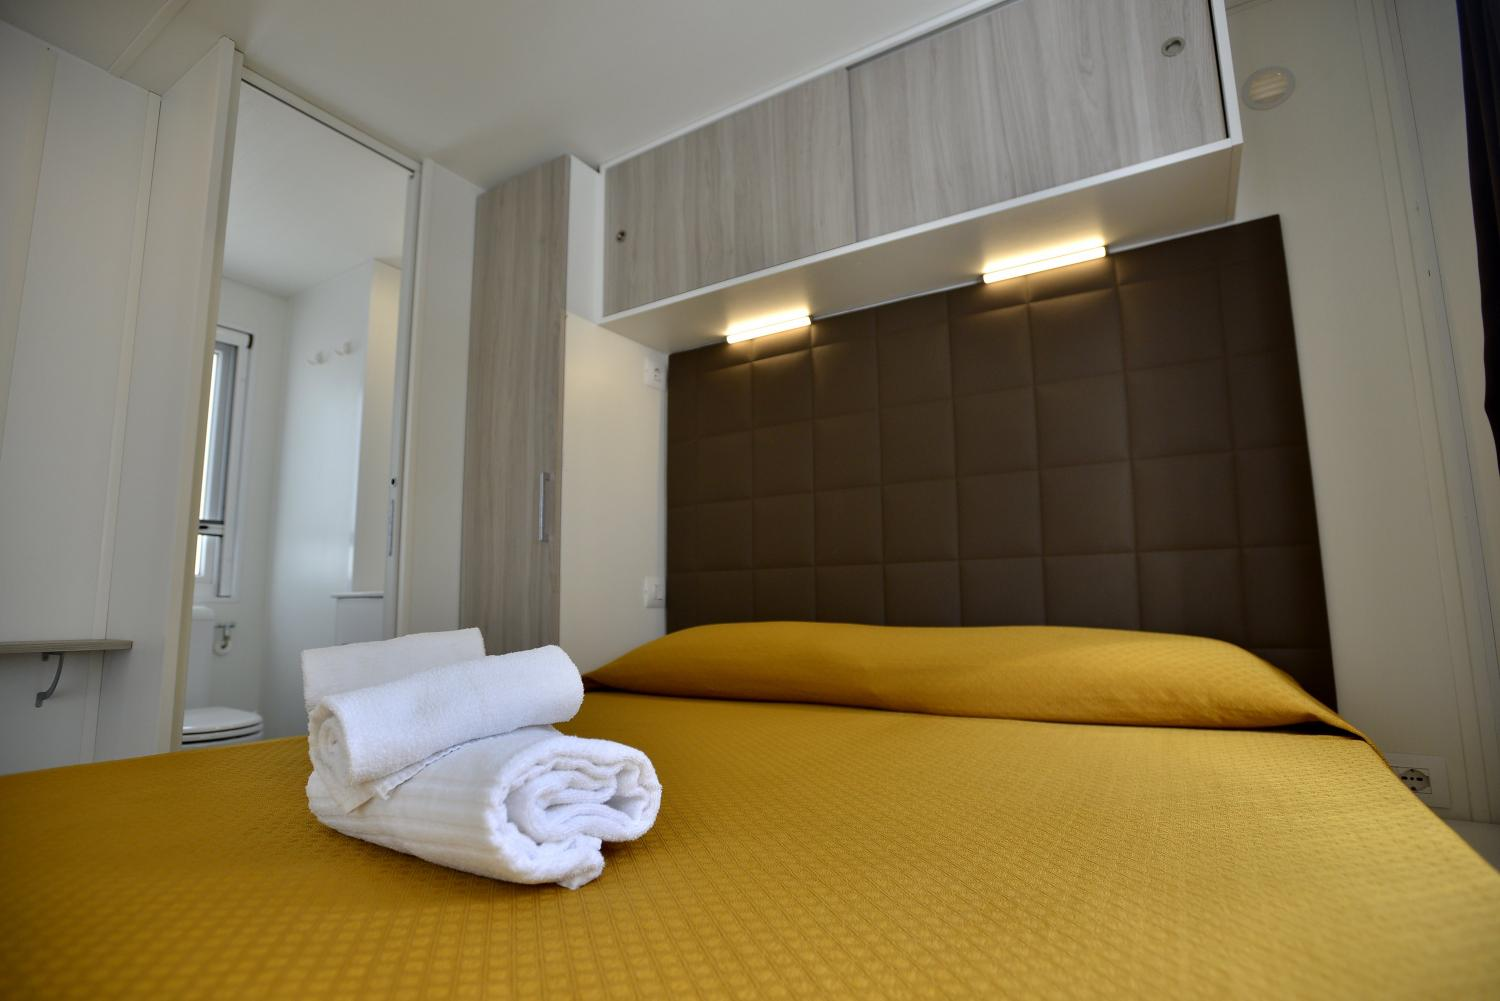 Mobile Home Torre Smeraldo Alghero village | Torre del Porticciolo on one bed room, one bed studio, one man mobile home, one bed truck, one bed apartment, two bed mobile home,